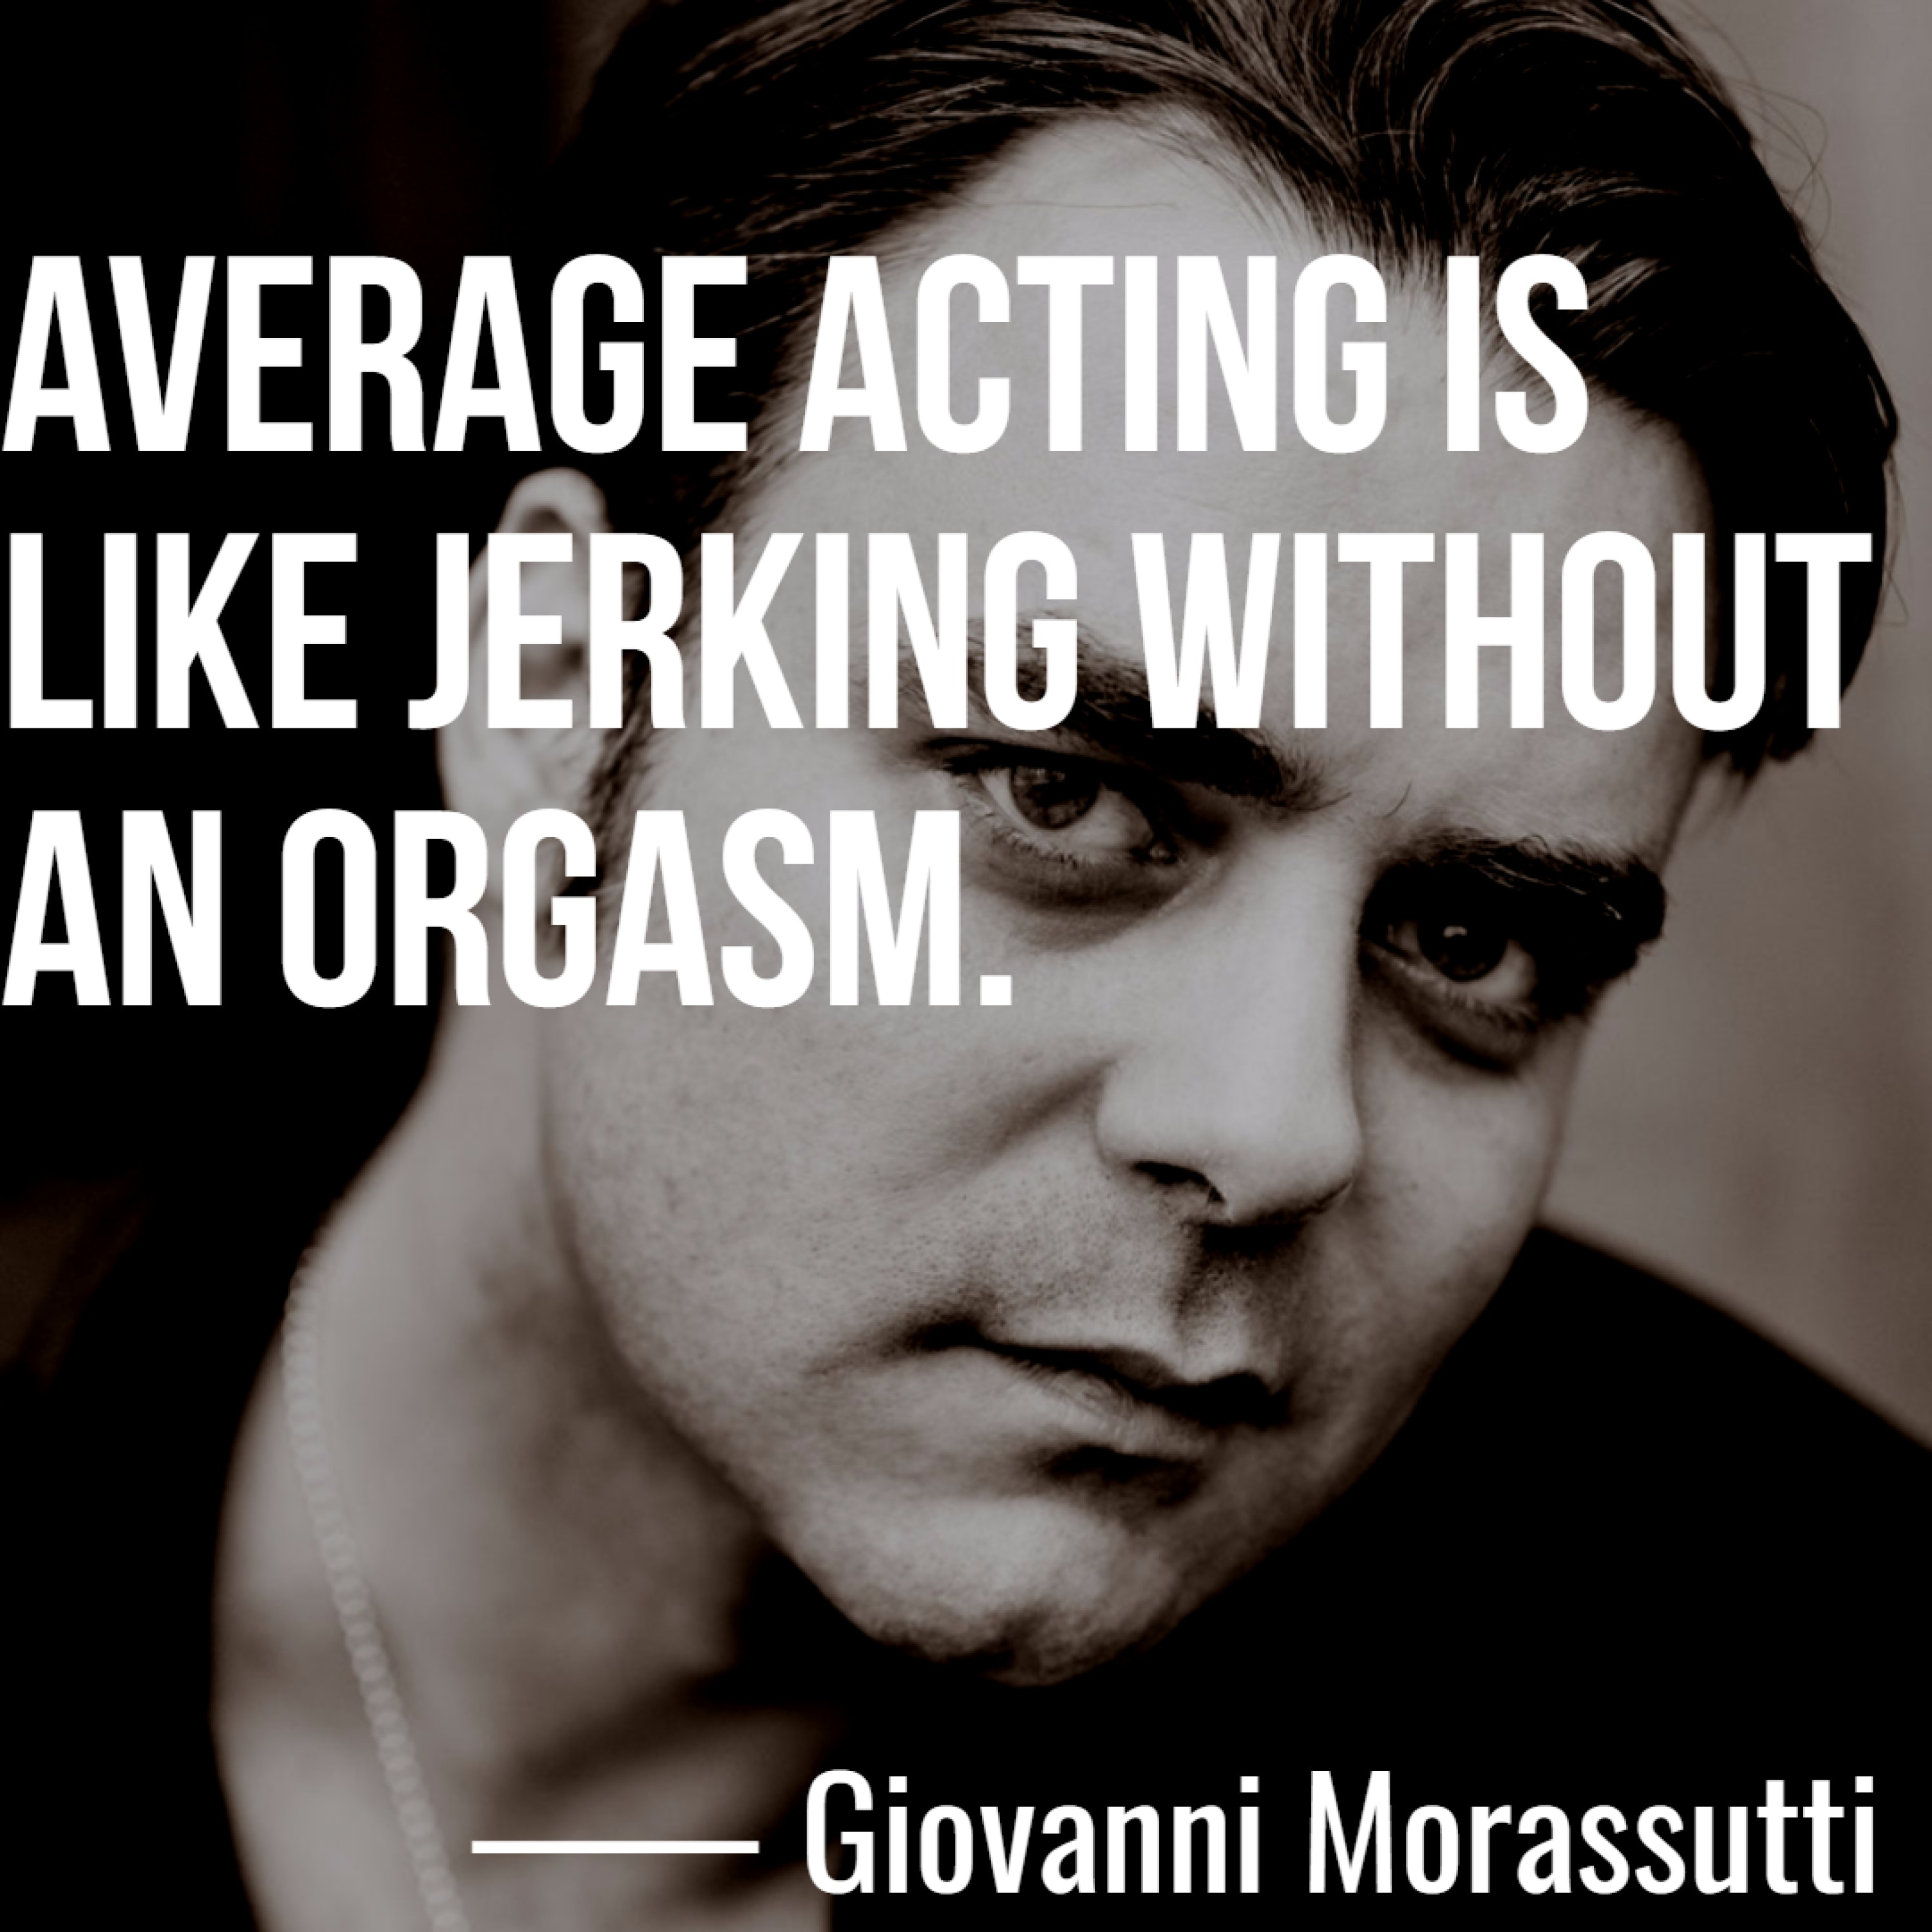 """Average acting is like jerking without an orgasm."" ― Giovanni Morassutti (3000 x 3000)"